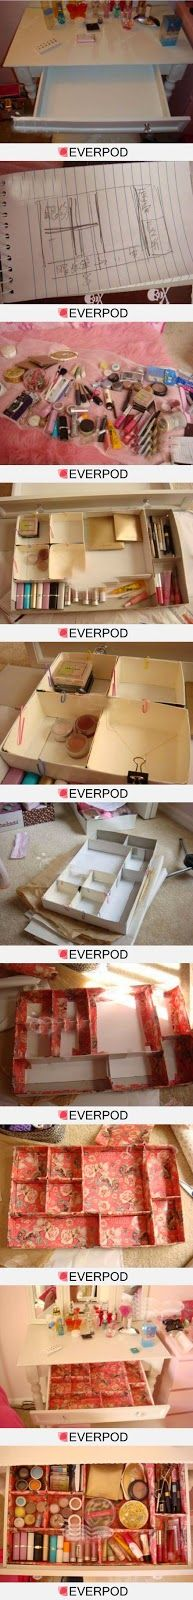 DIY drawer organizer -- I should do this for my make-up and hair-accessory drawers in the bathroom. I adore this idea. And it's nearly a free DIY Diy Drawer Organizer, Drawer Organisers, Drawer Dividers, Storage Organizers, Drawer Storage, Do It Yourself Organization, Makeup Organization, Makeup Storage, Jewelry Storage